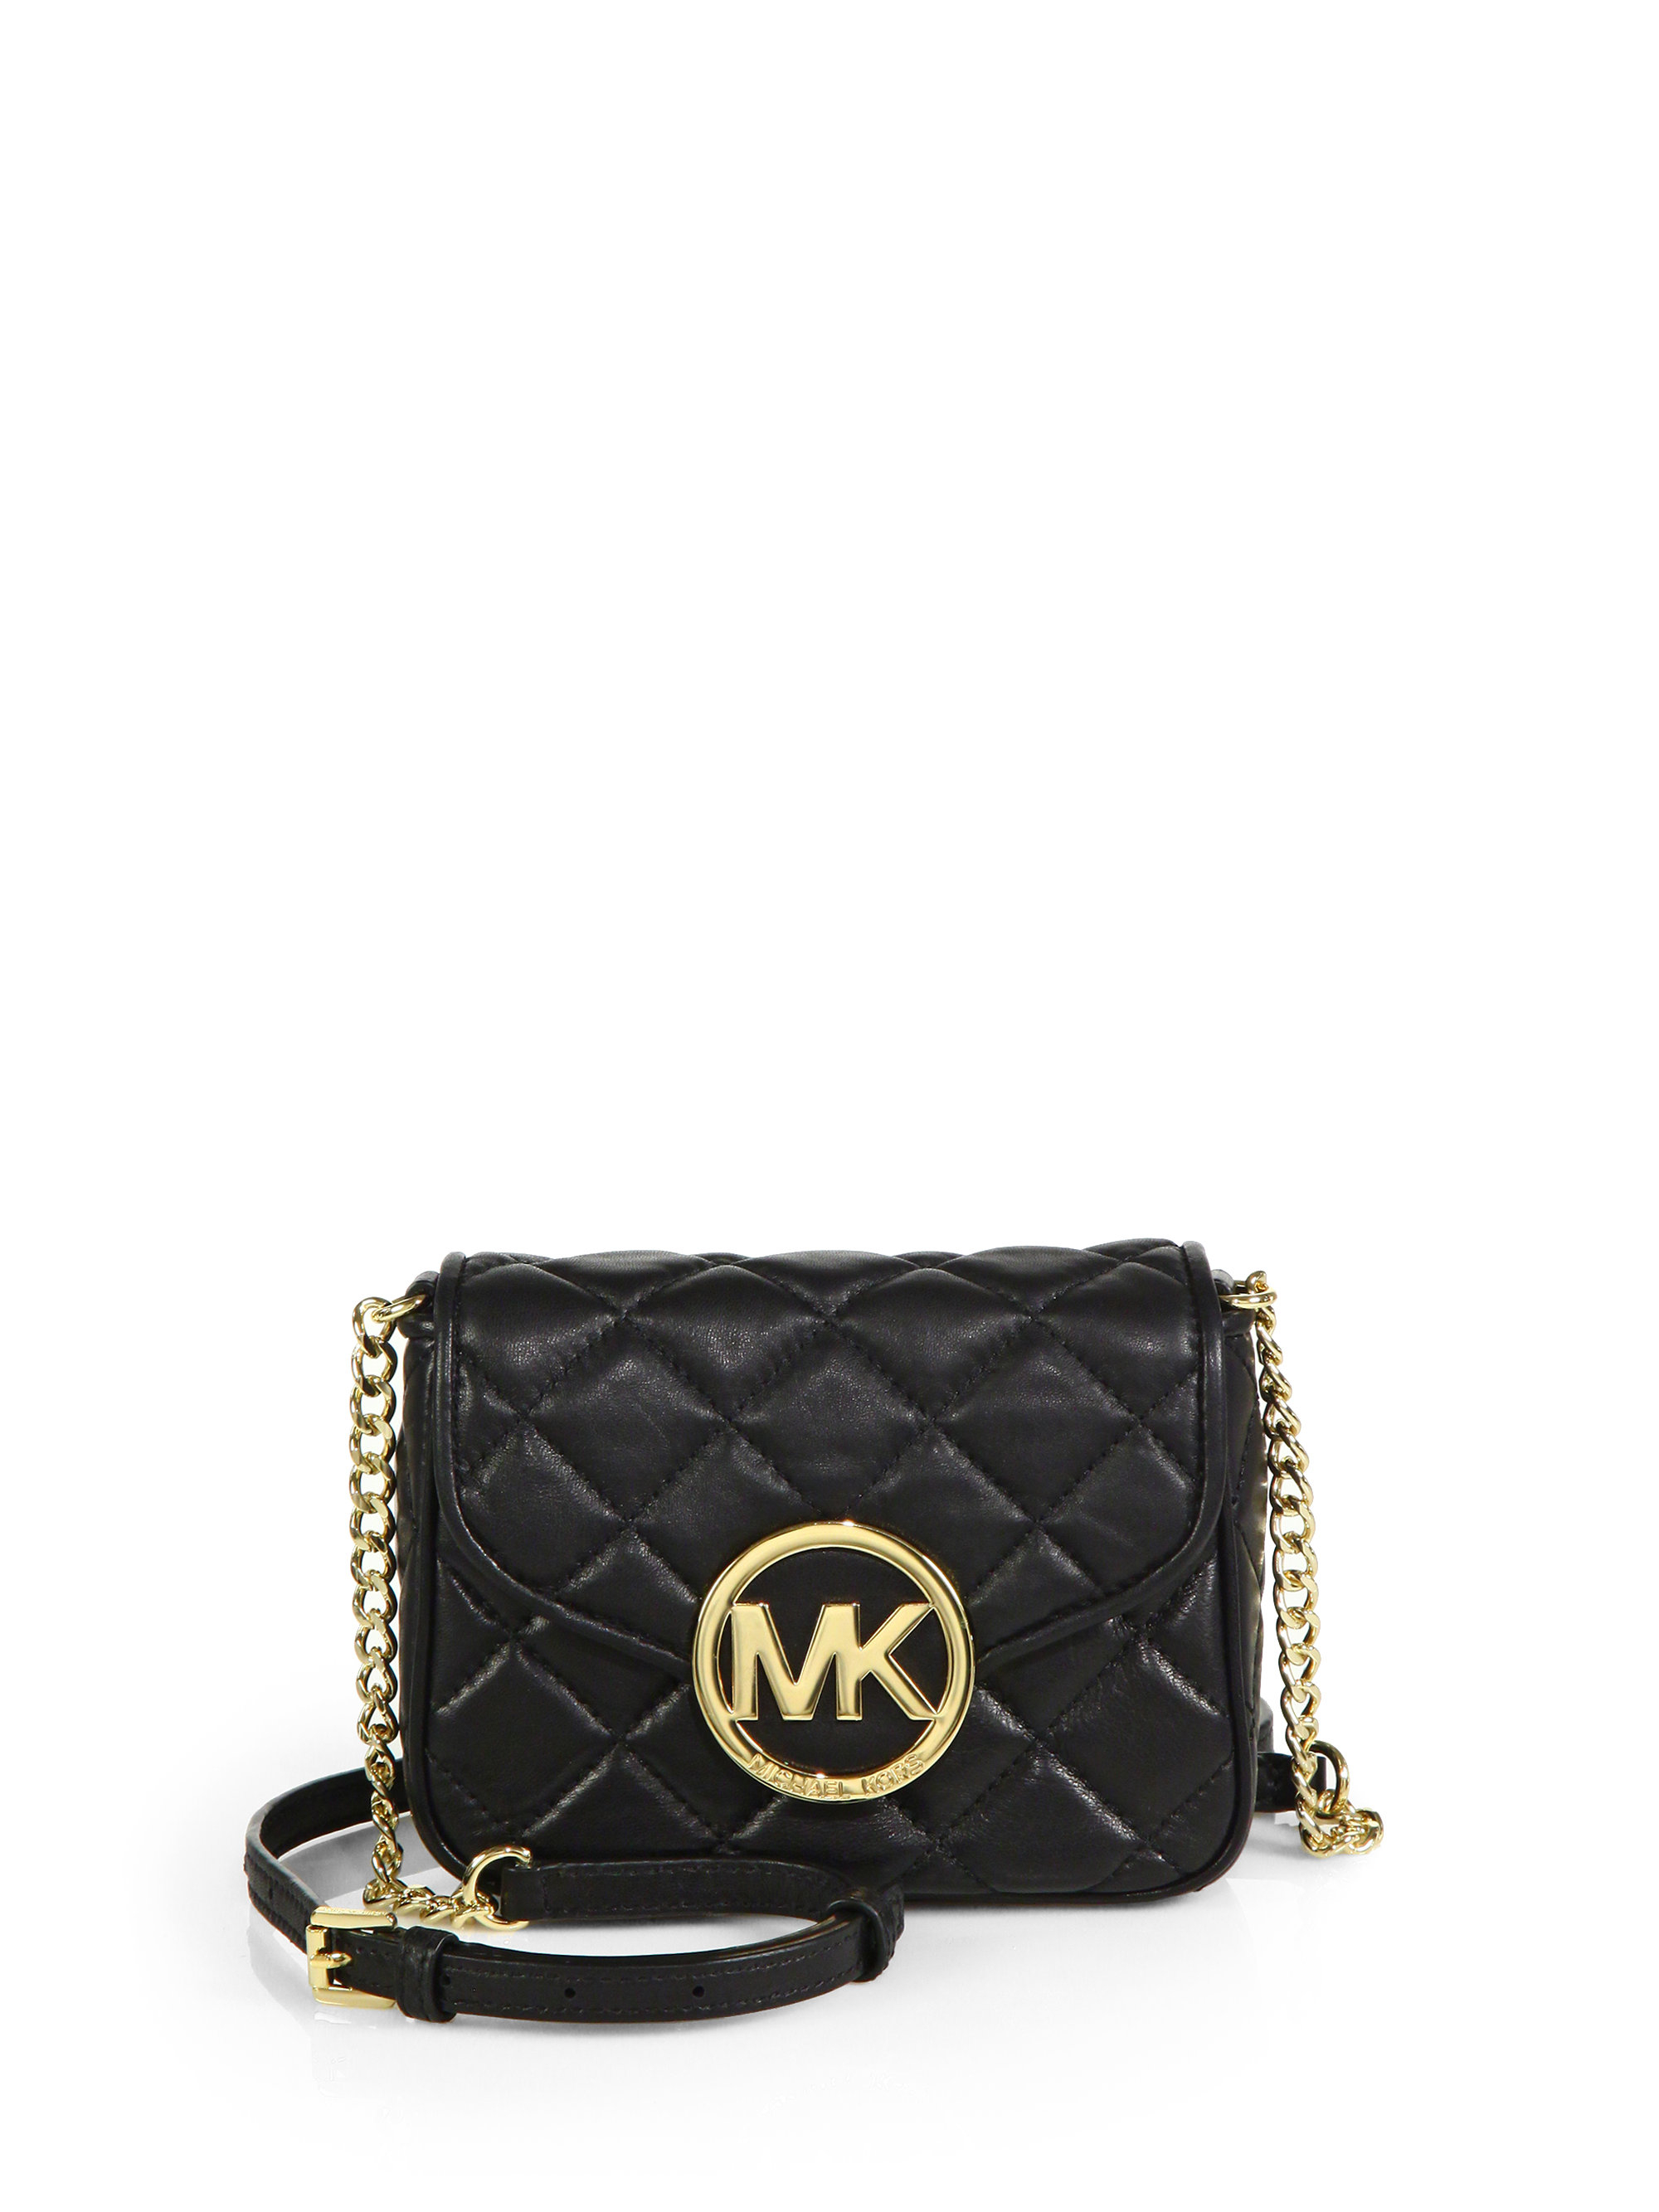 665a039fe149ef Gallery. Previously sold at: Saks Fifth Avenue · Women's Michael By Michael  Kors Fulton